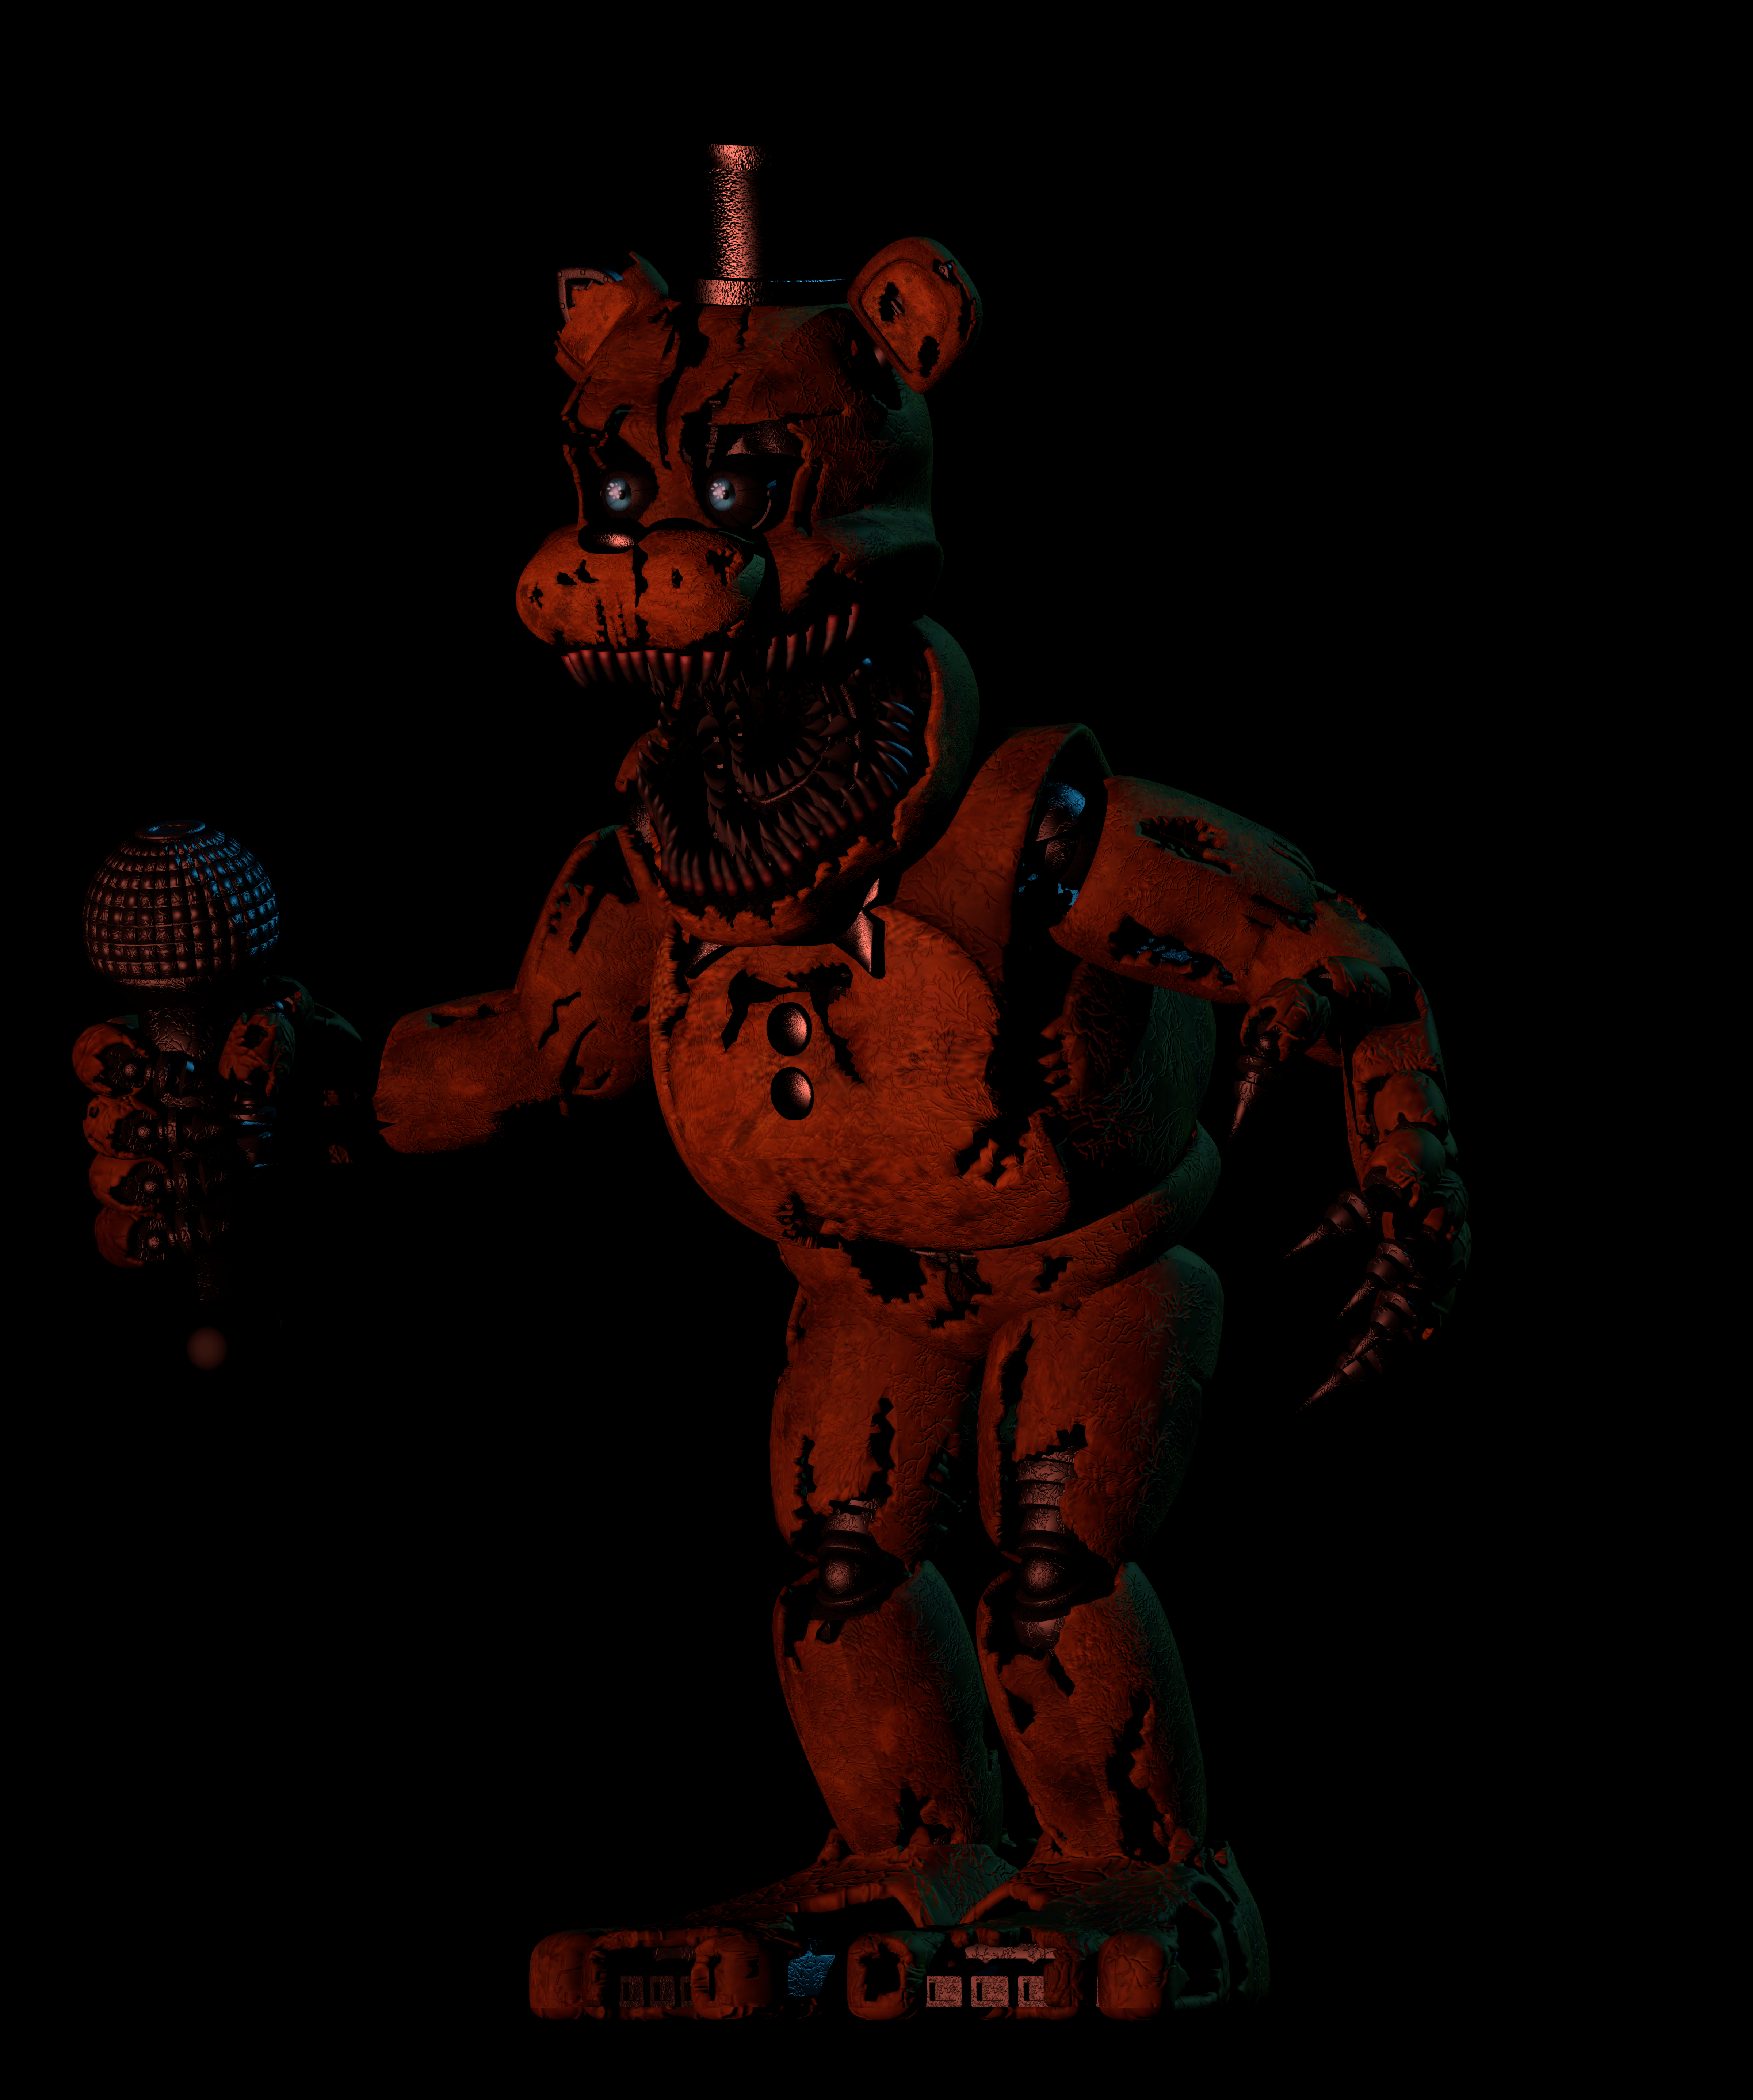 Nightmare Withered Freddy - 0425